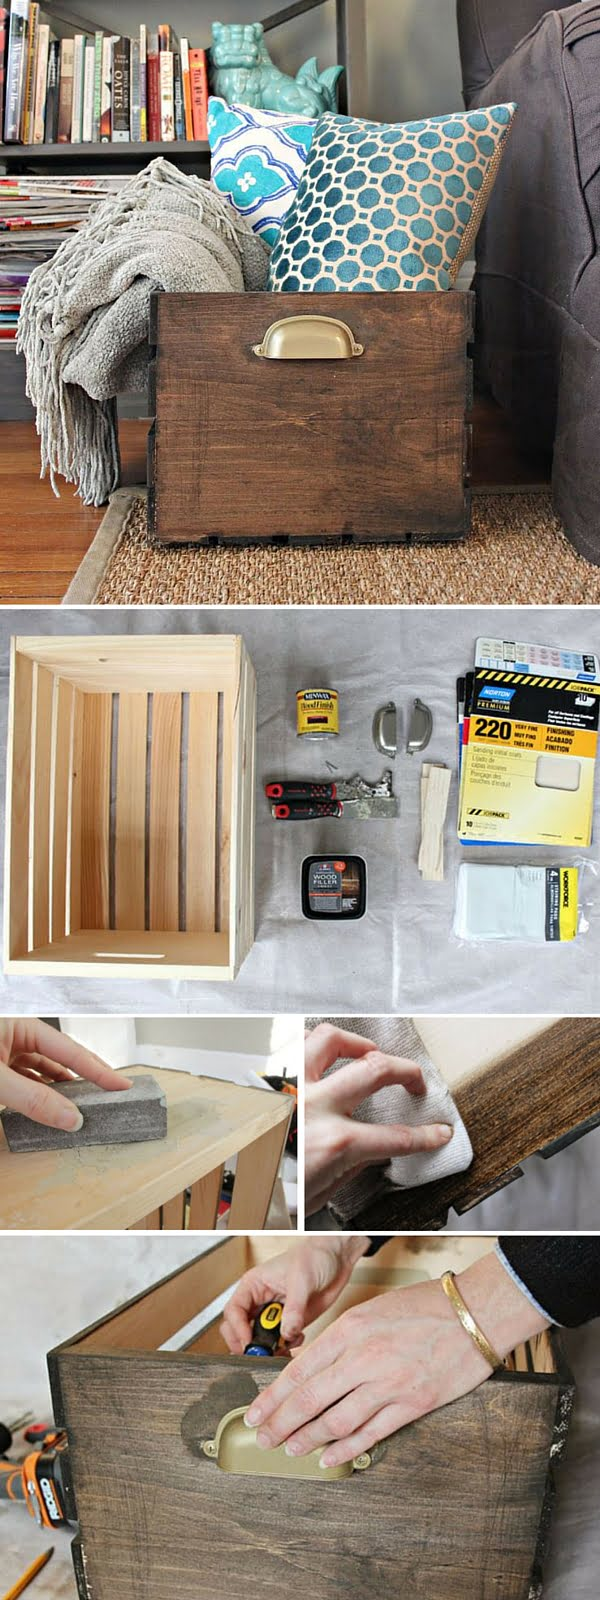 Check out the tutorial: #DIY Storage Crate #crafts #rustic #homedecor